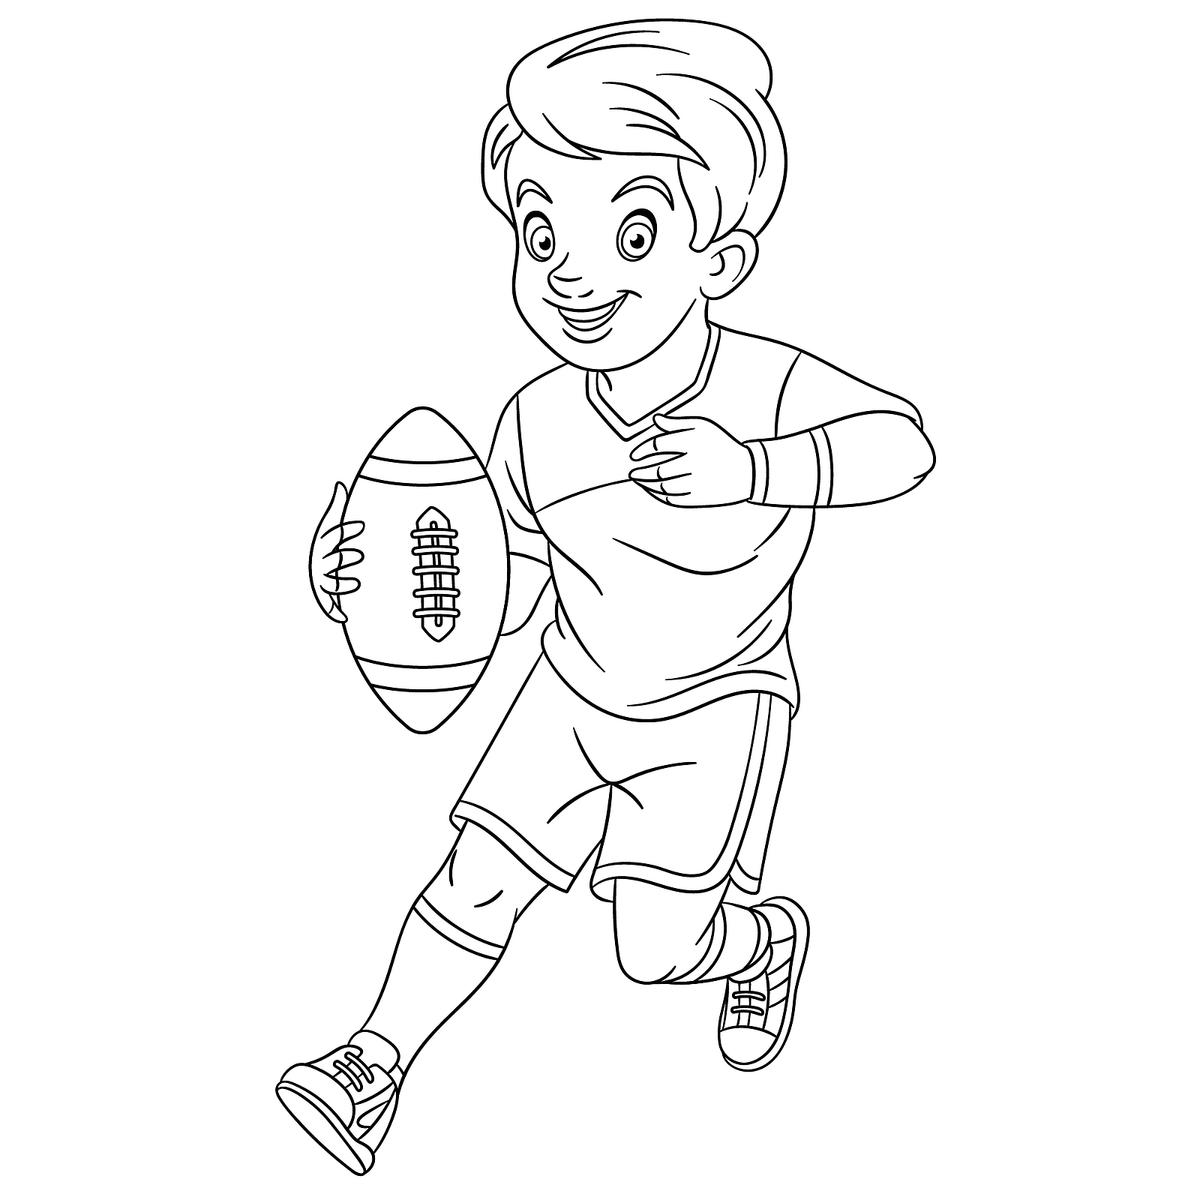 Football Coloring Pages Printable Sports Coloring Activity Pages To Entertain Kids During The Game Printables 30seconds Mom